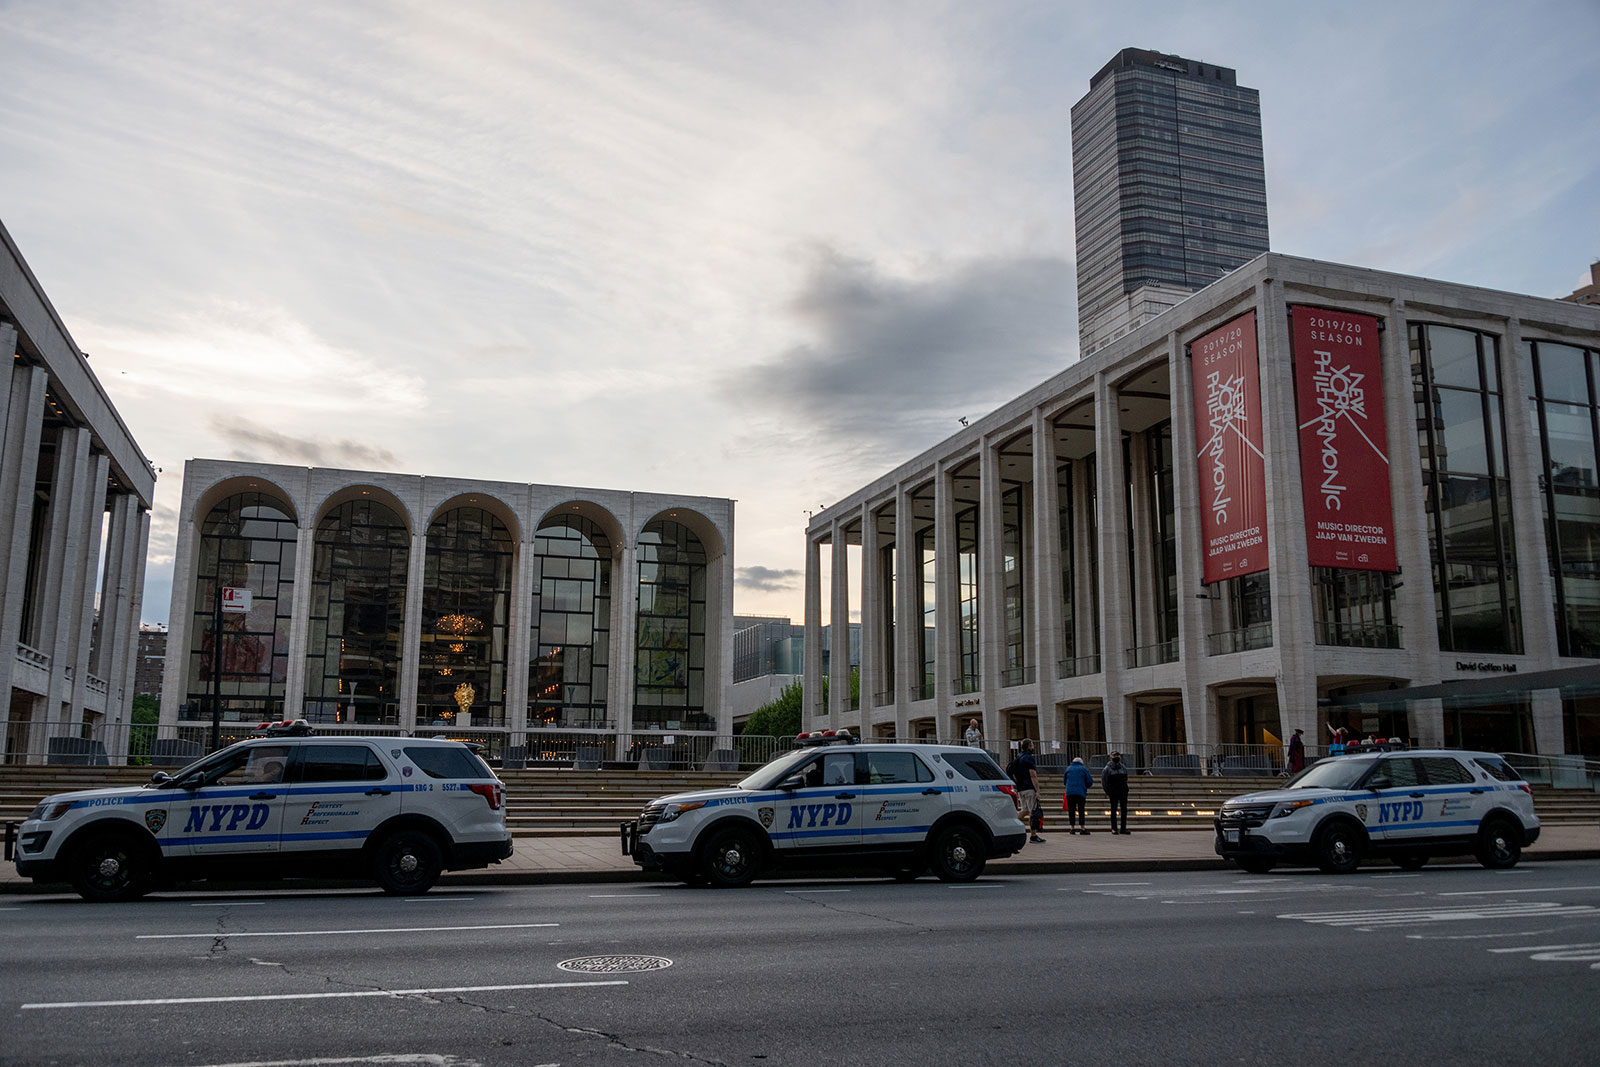 A banner advertising the New York Philharmonic hangs on the exterior of Lincoln Center in New York.